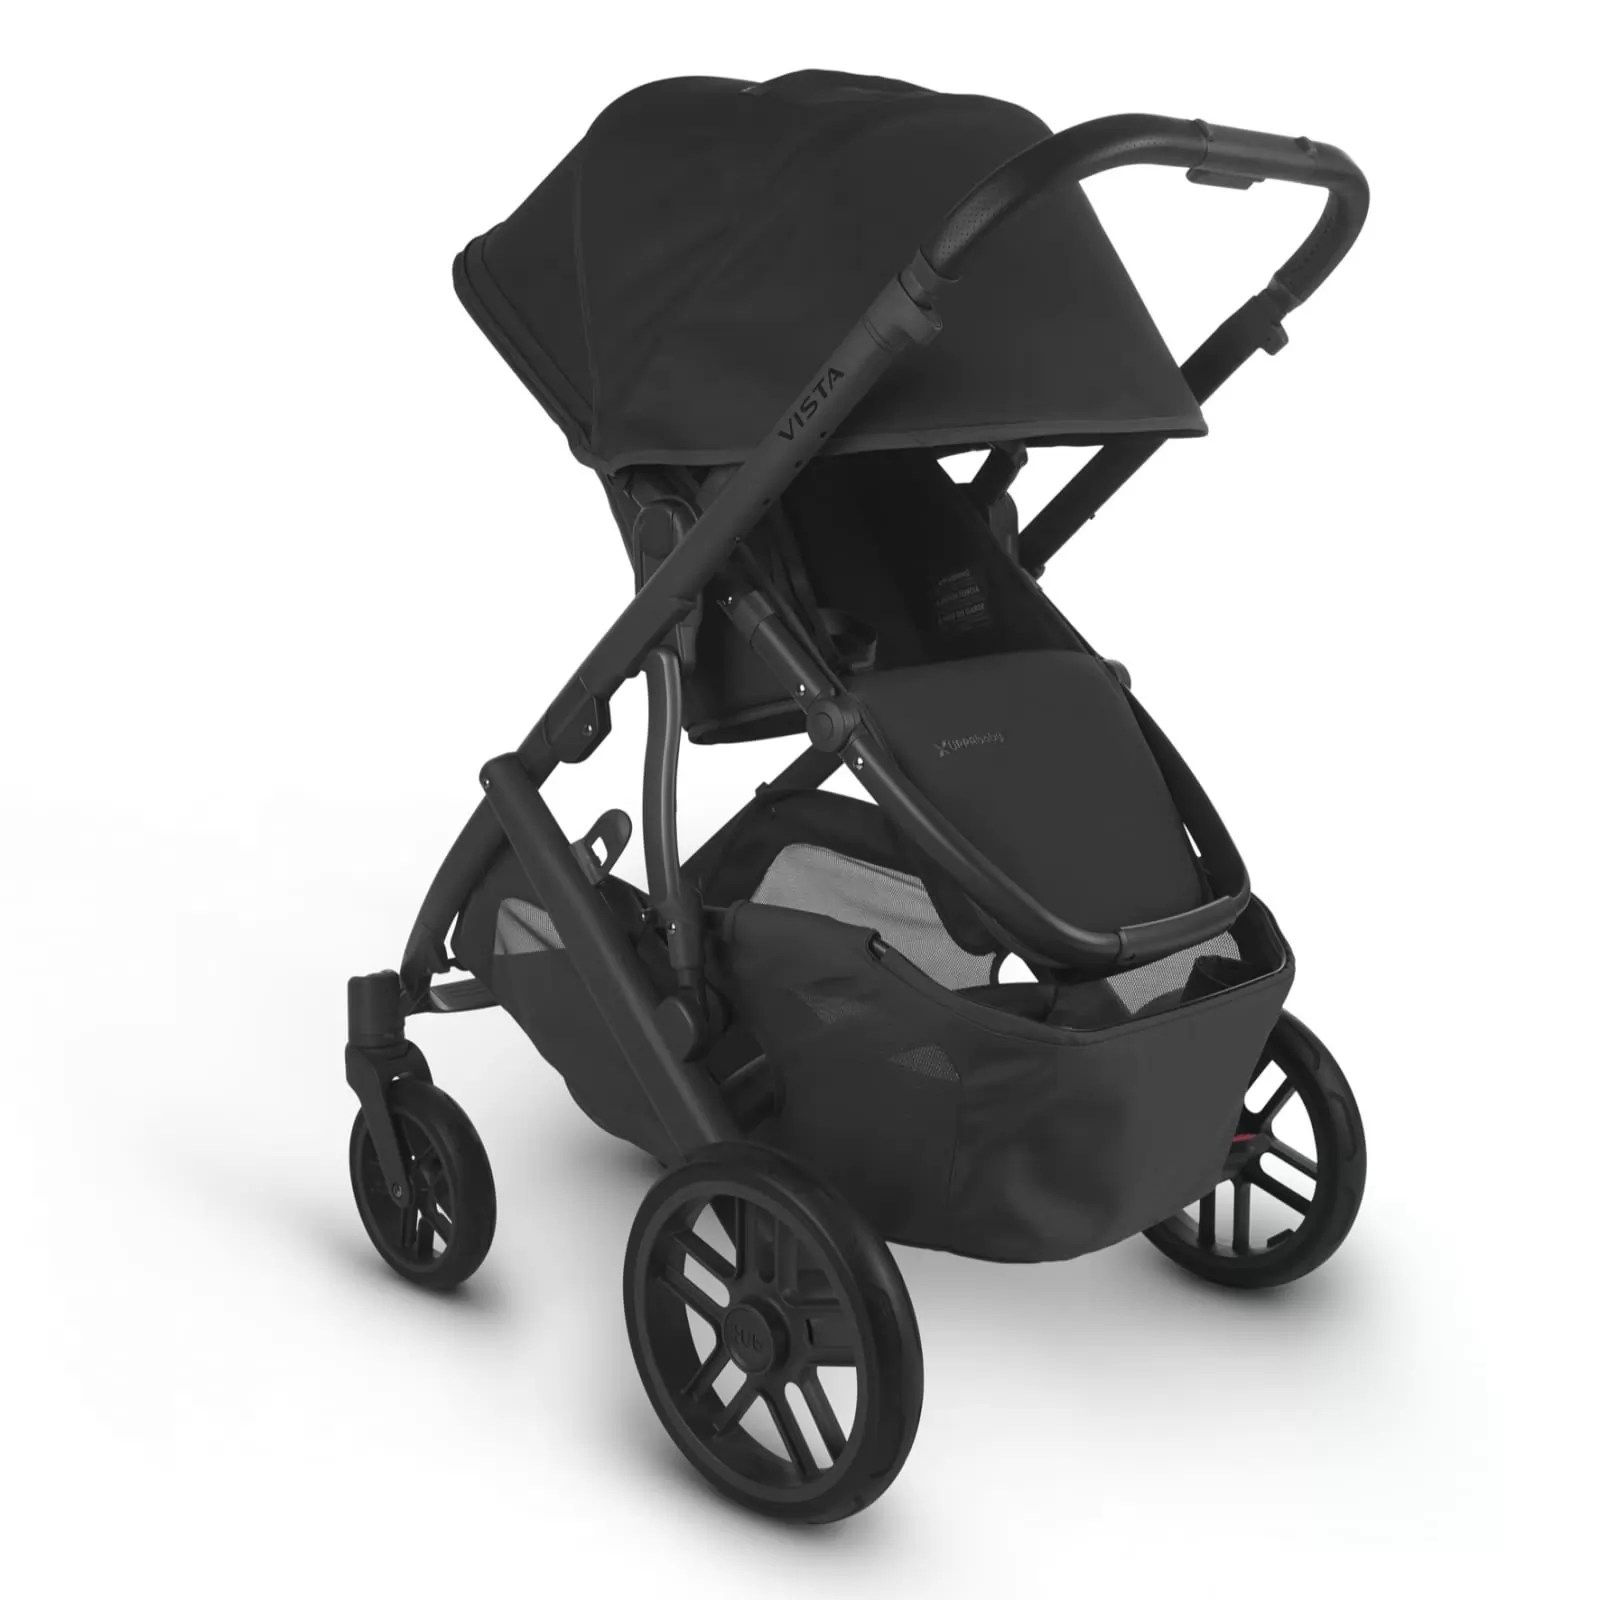 Maxi Cosi Car Seat Uppababy Vista Uppababy Vista 2 Stroller Carry Cot Jake Baby Elegance